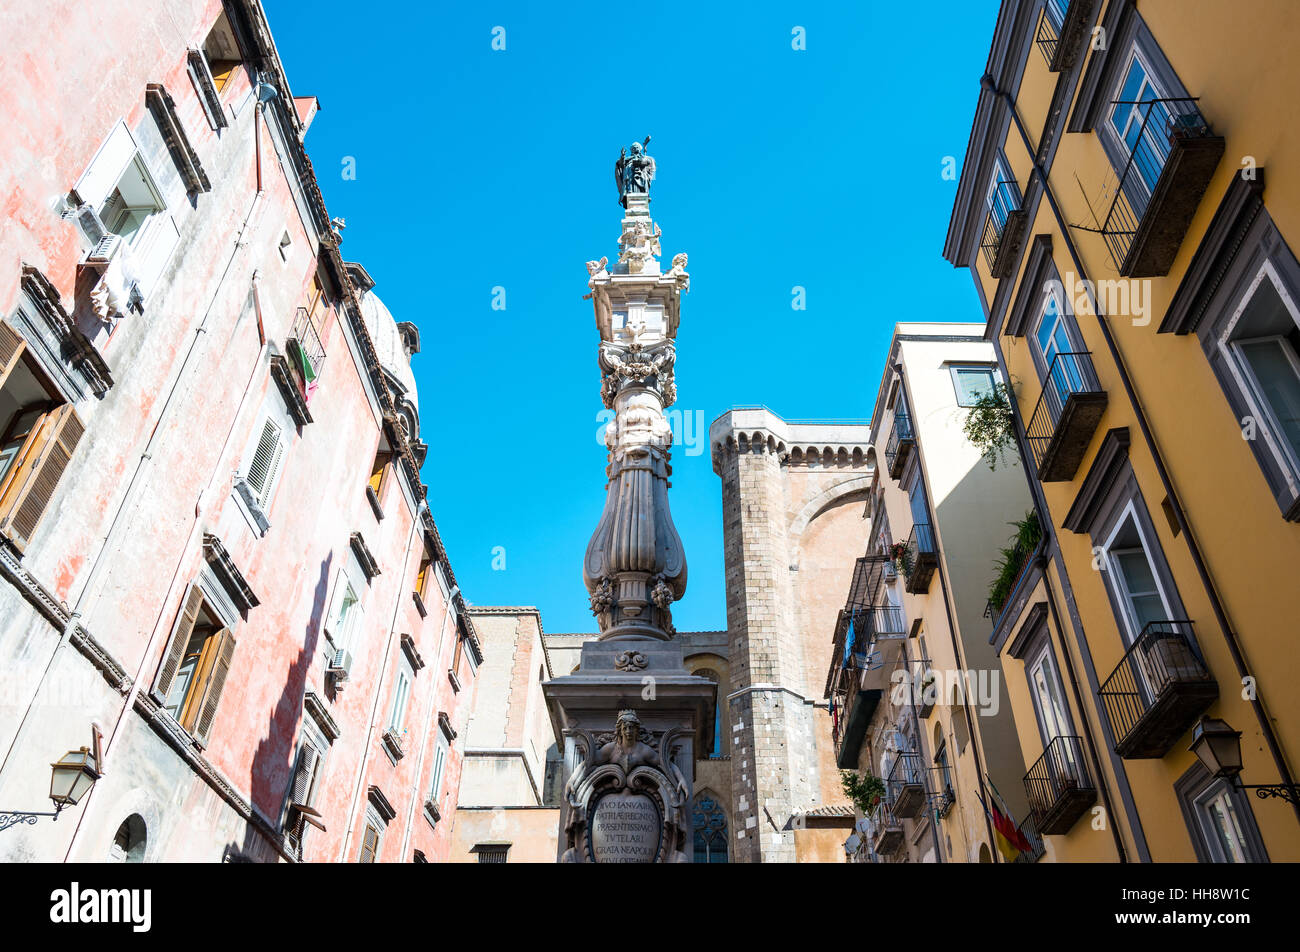 Italy,Naples,the St.Gennaro spire in Sforza square - Stock Image